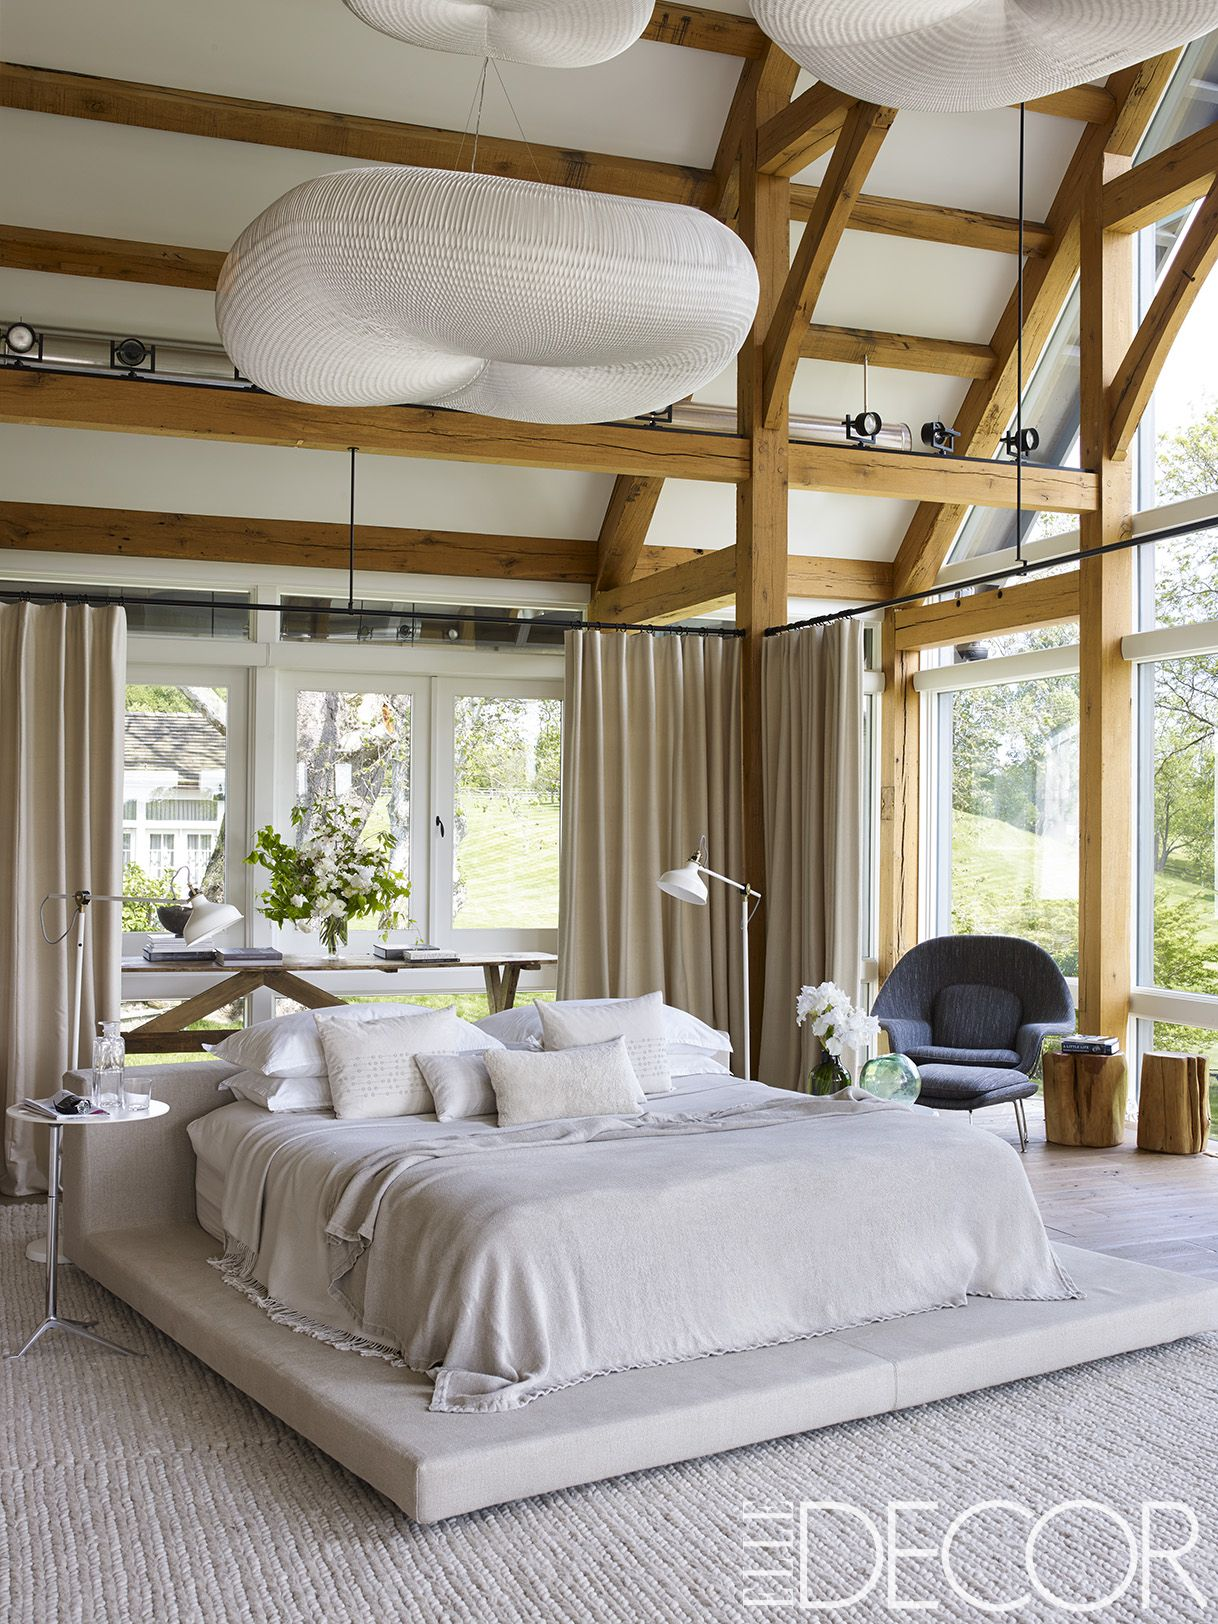 how to decorate living room images of interior decorated rooms 25 minimalist bedroom decor ideas - modern designs for ...